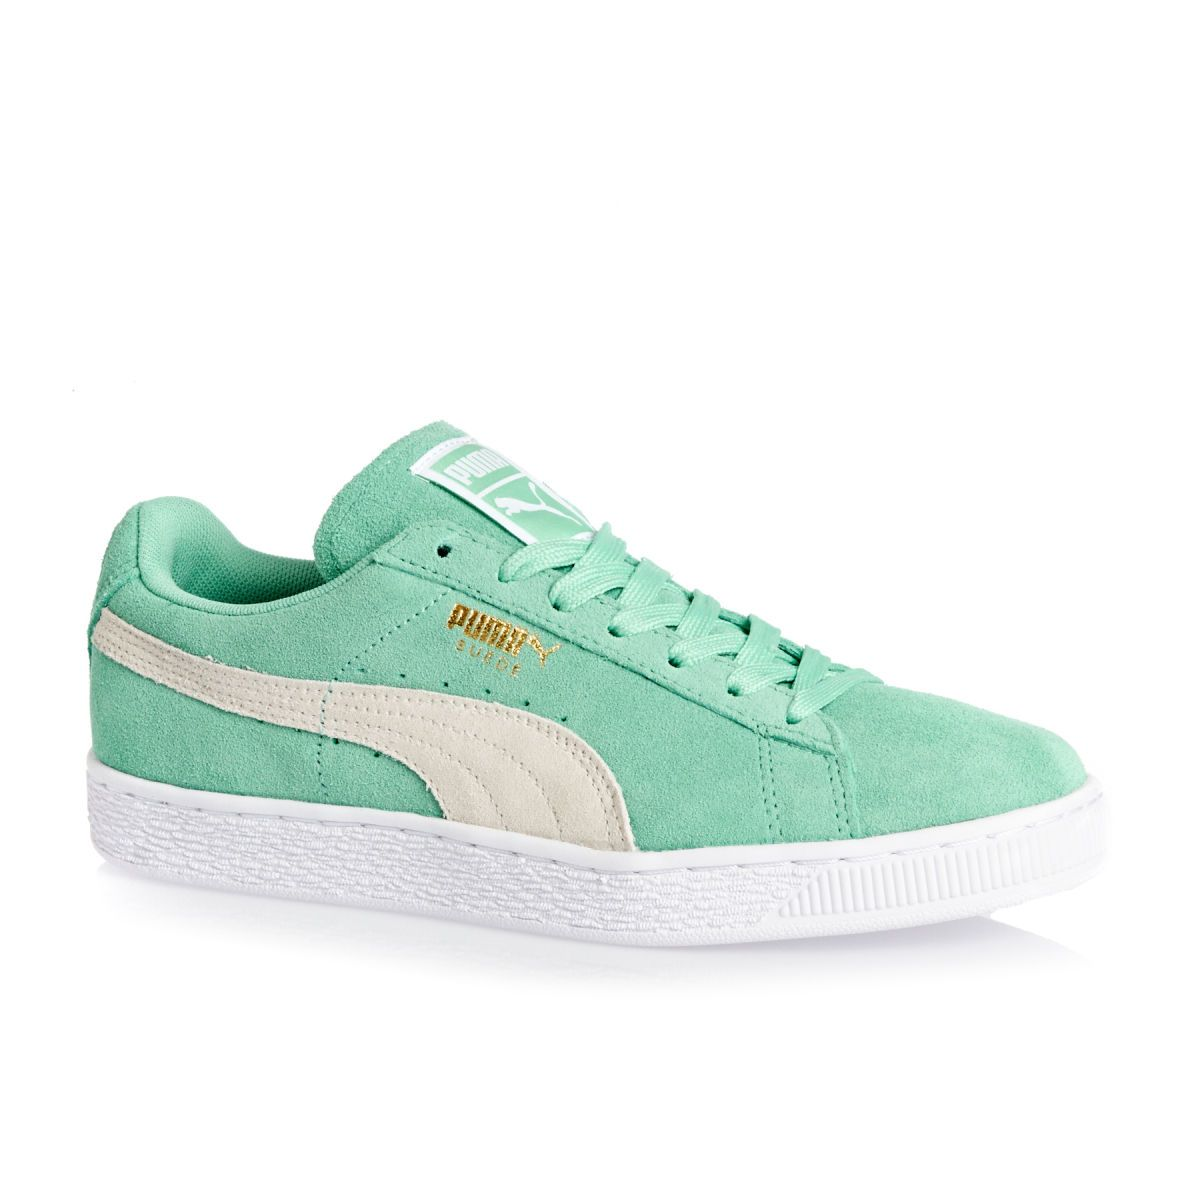 Puma Shoes - Puma Suede Classic Shoes - Holiday-white